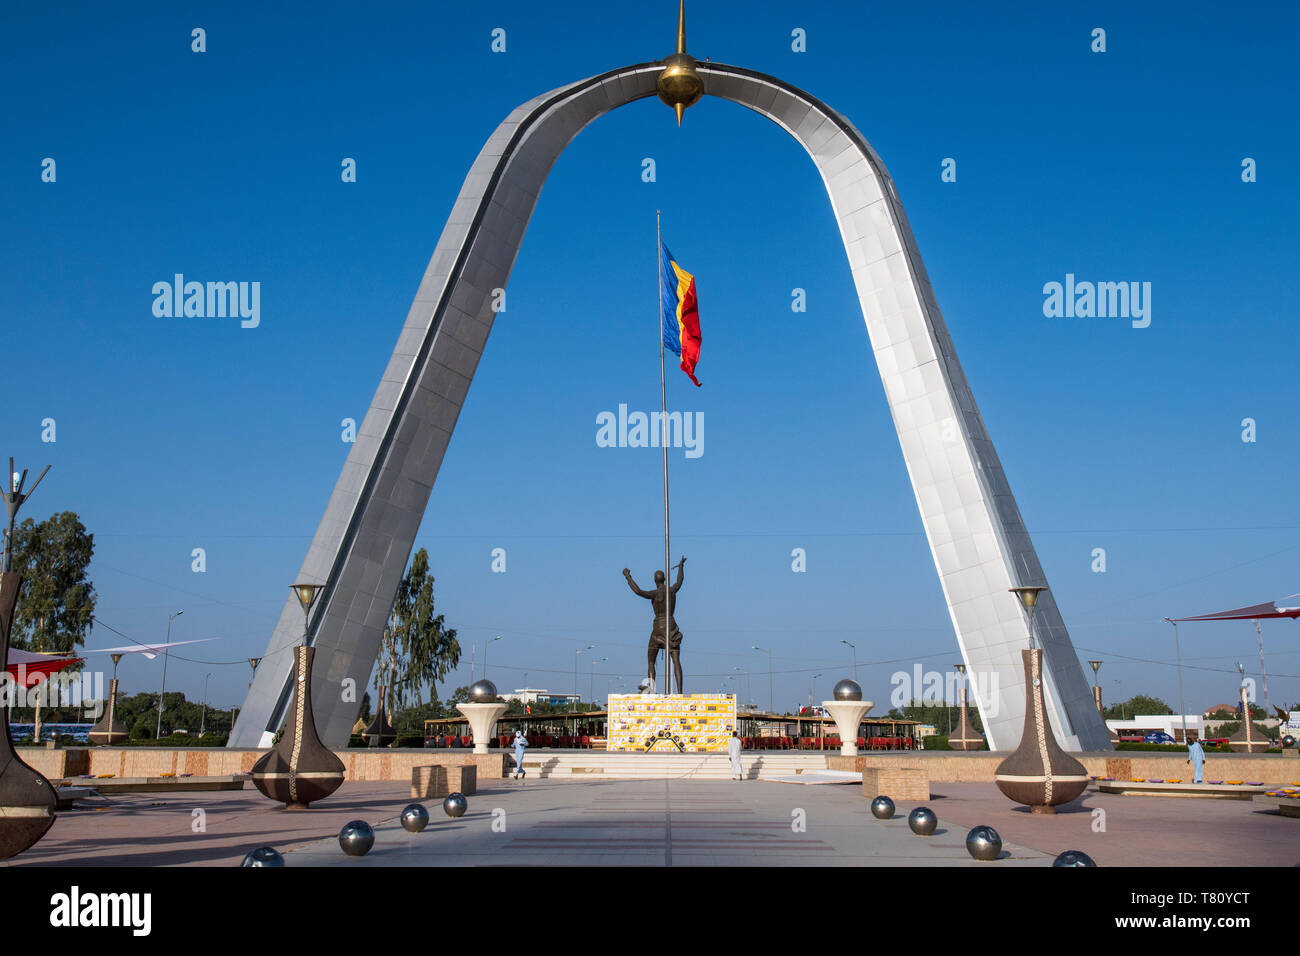 Monument of Independence, Place de la Nation, N'Djamena, Chad, Africa - Stock Image